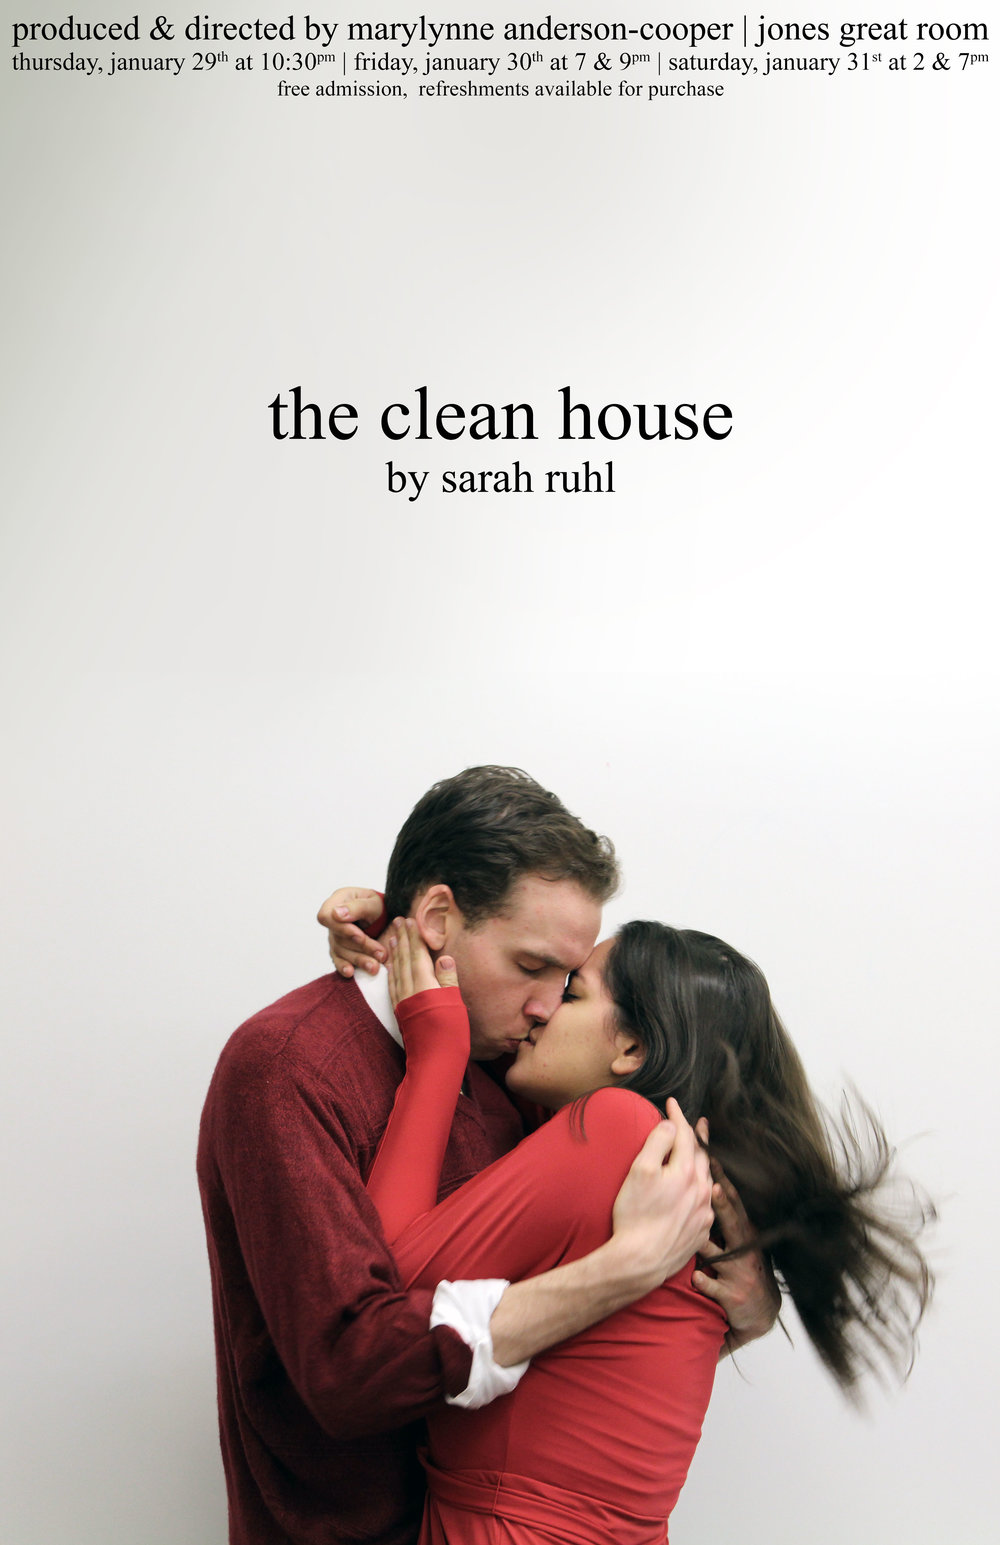 The Clean House  Final Poster Design